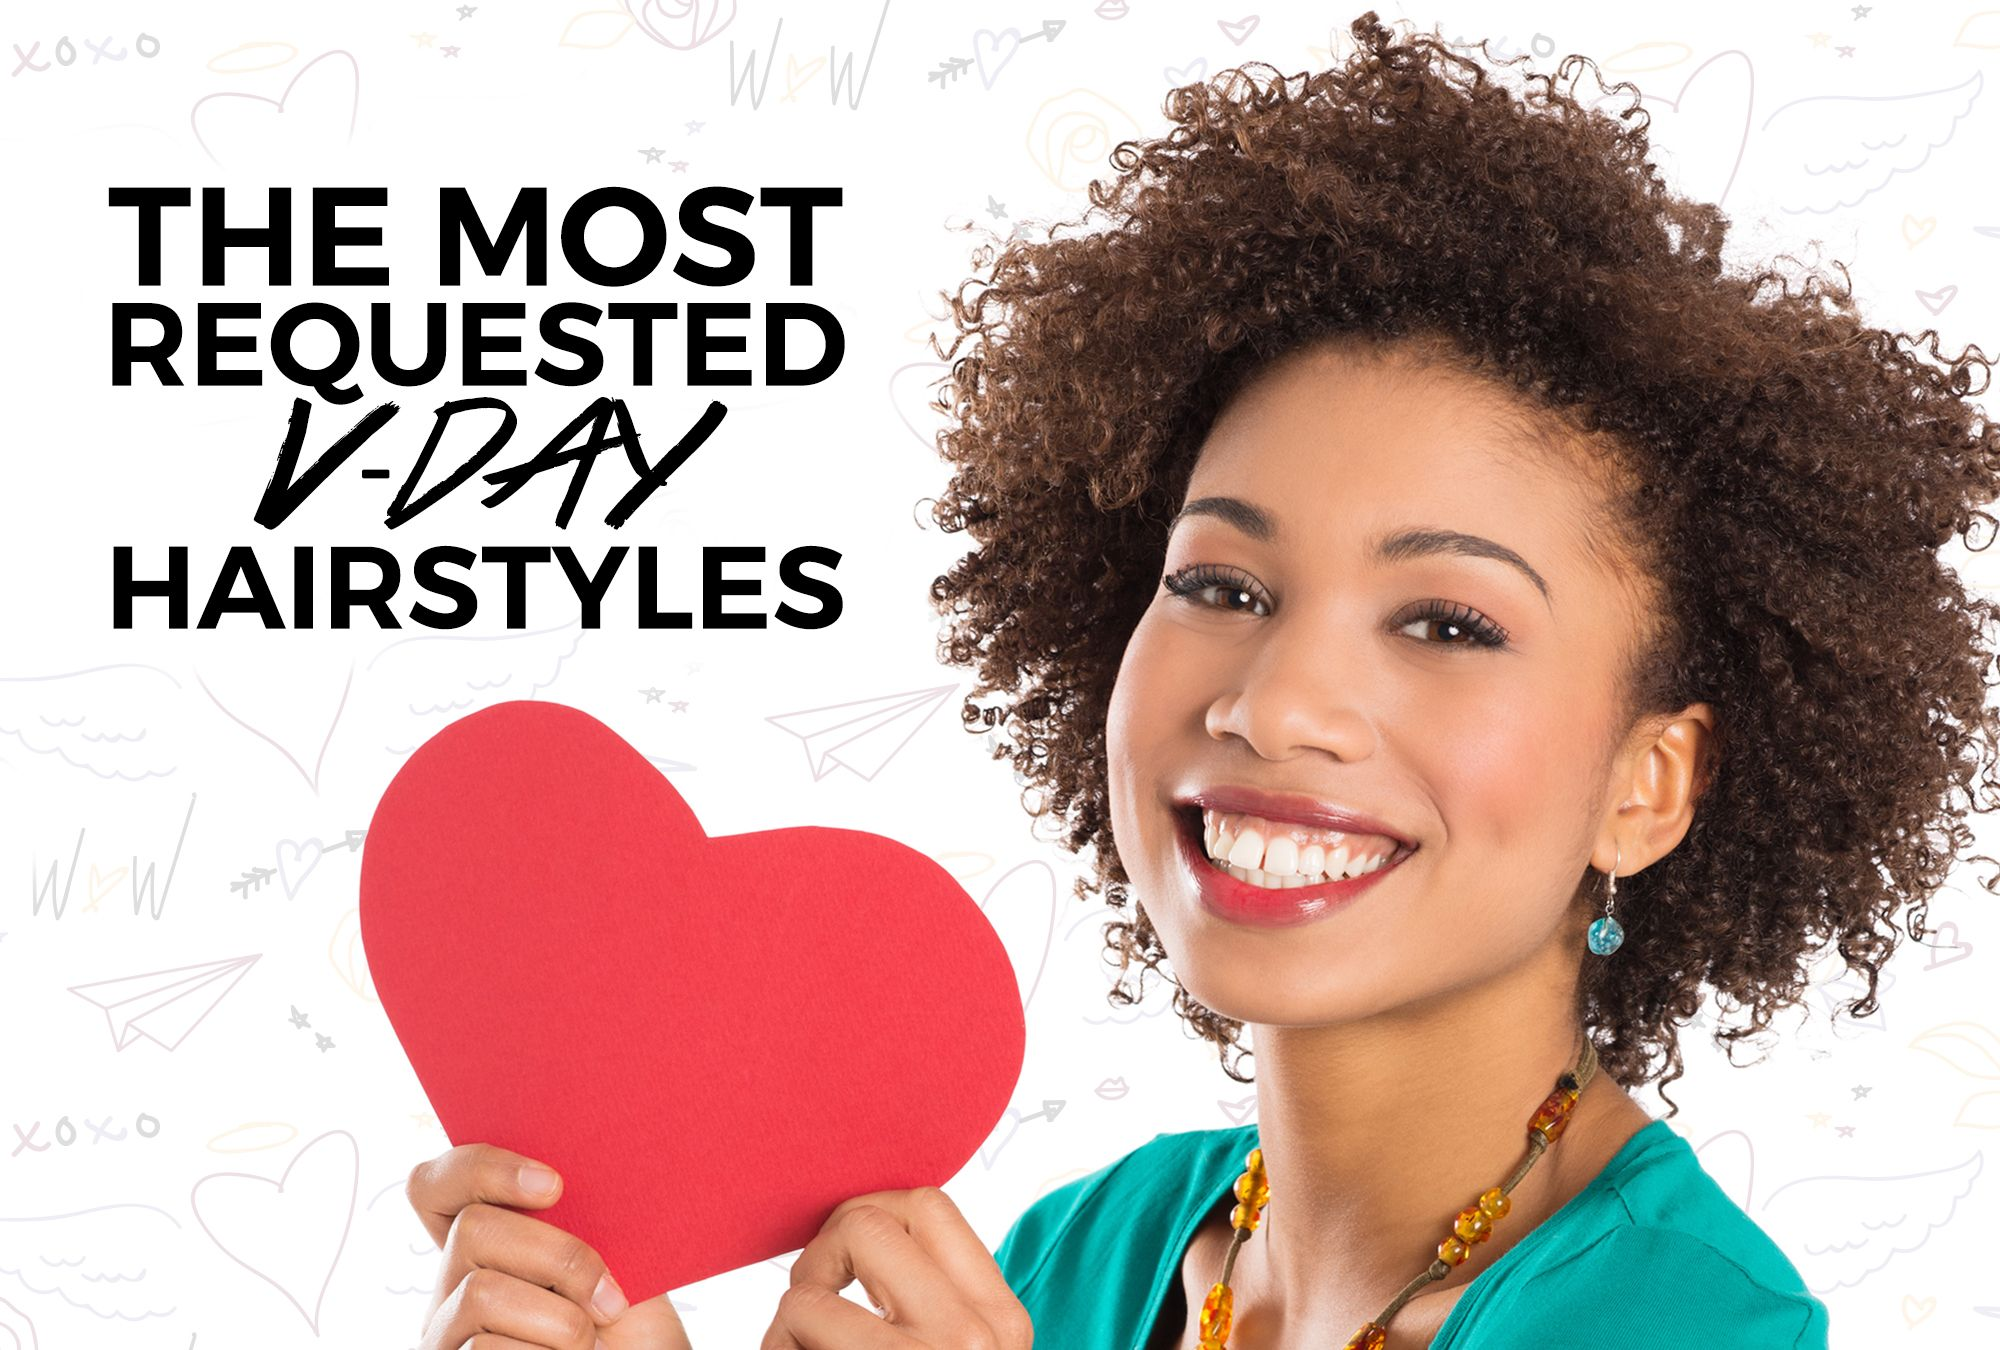 Stylists Dish On Their Most Requested Valentine's Day Hair Looks